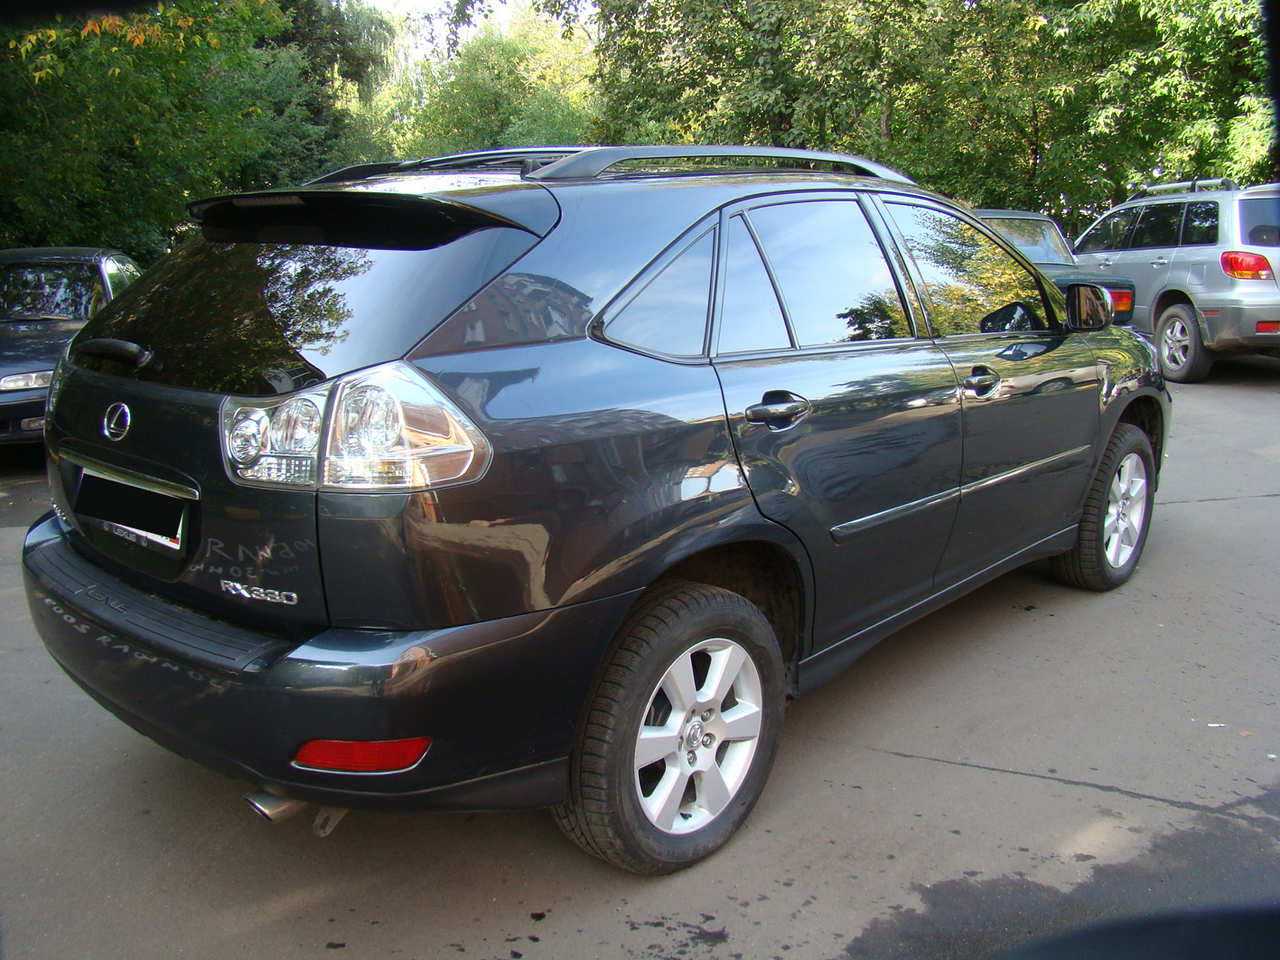 2004 lexus rx330 pictures gasoline automatic for sale. Black Bedroom Furniture Sets. Home Design Ideas